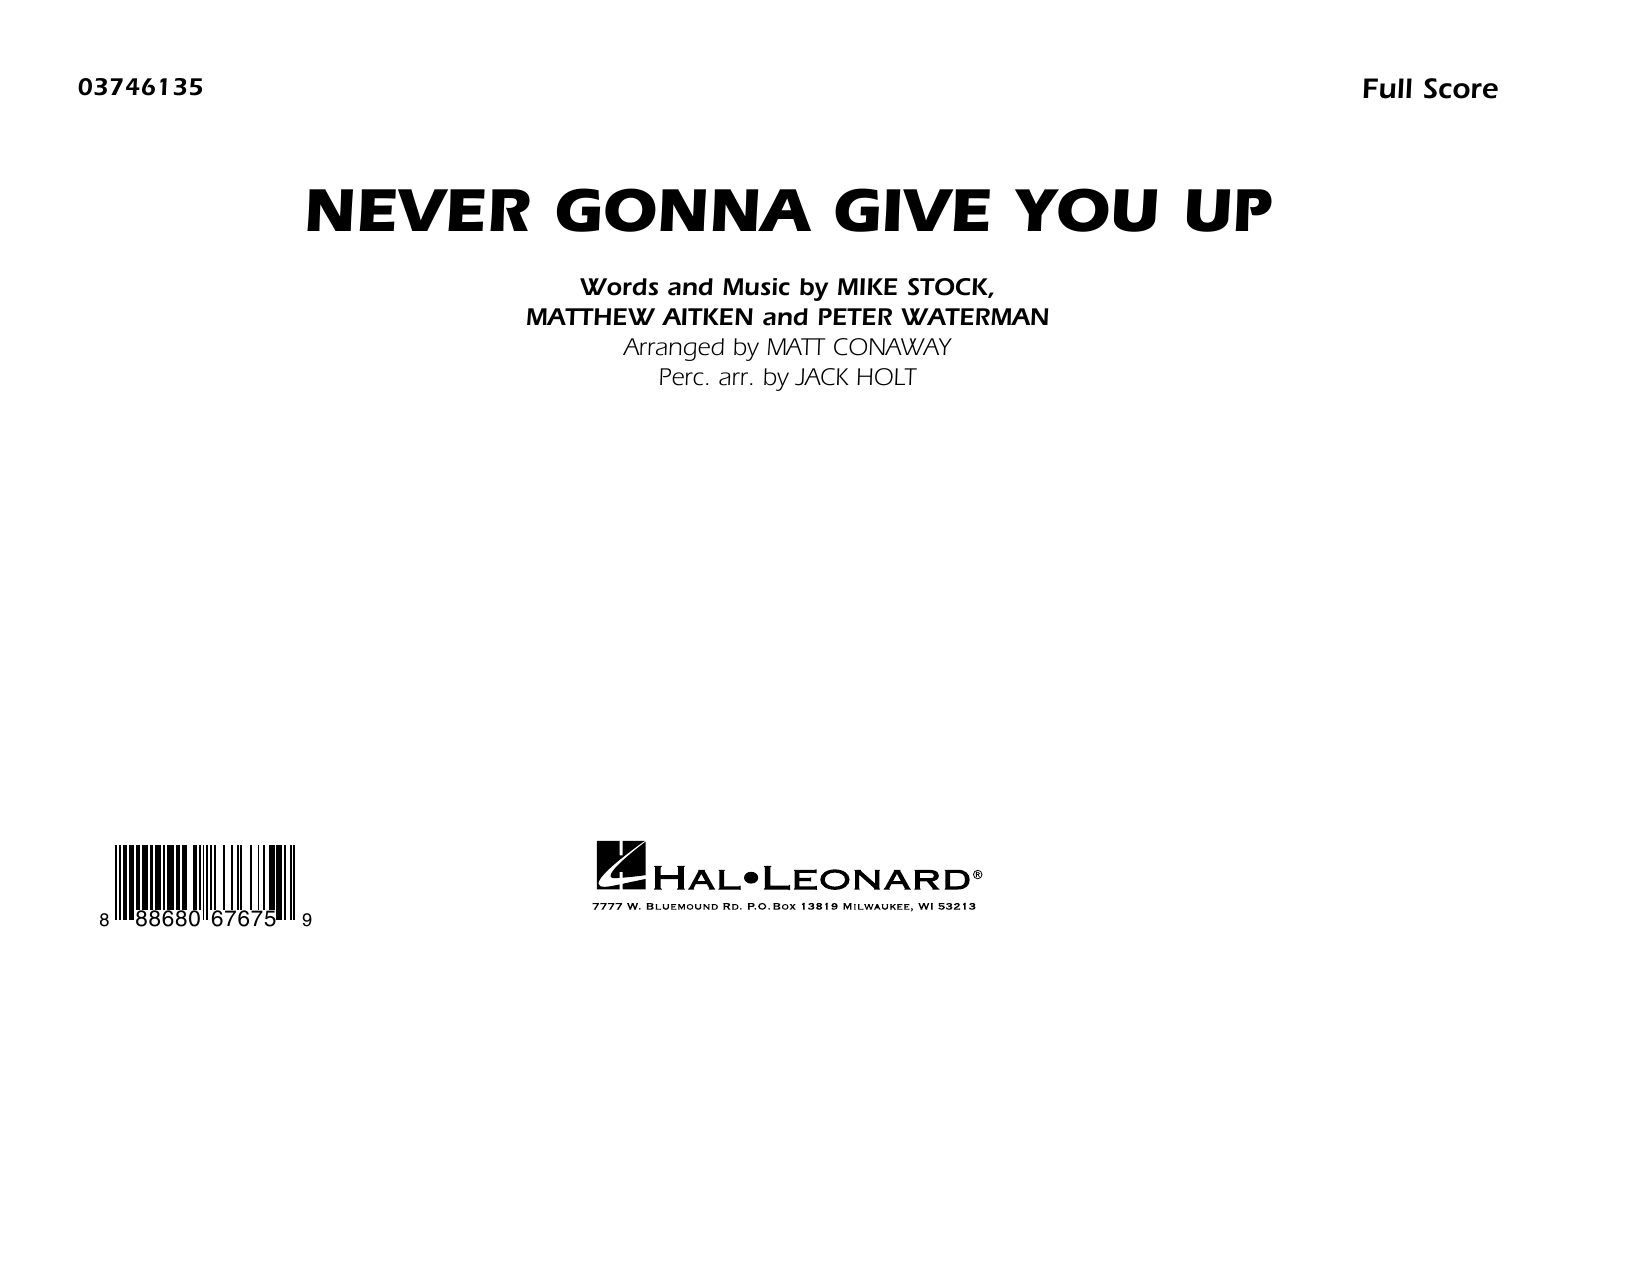 Never Gonna Give You Up - Conductor Score (Full Score) Sheet Music